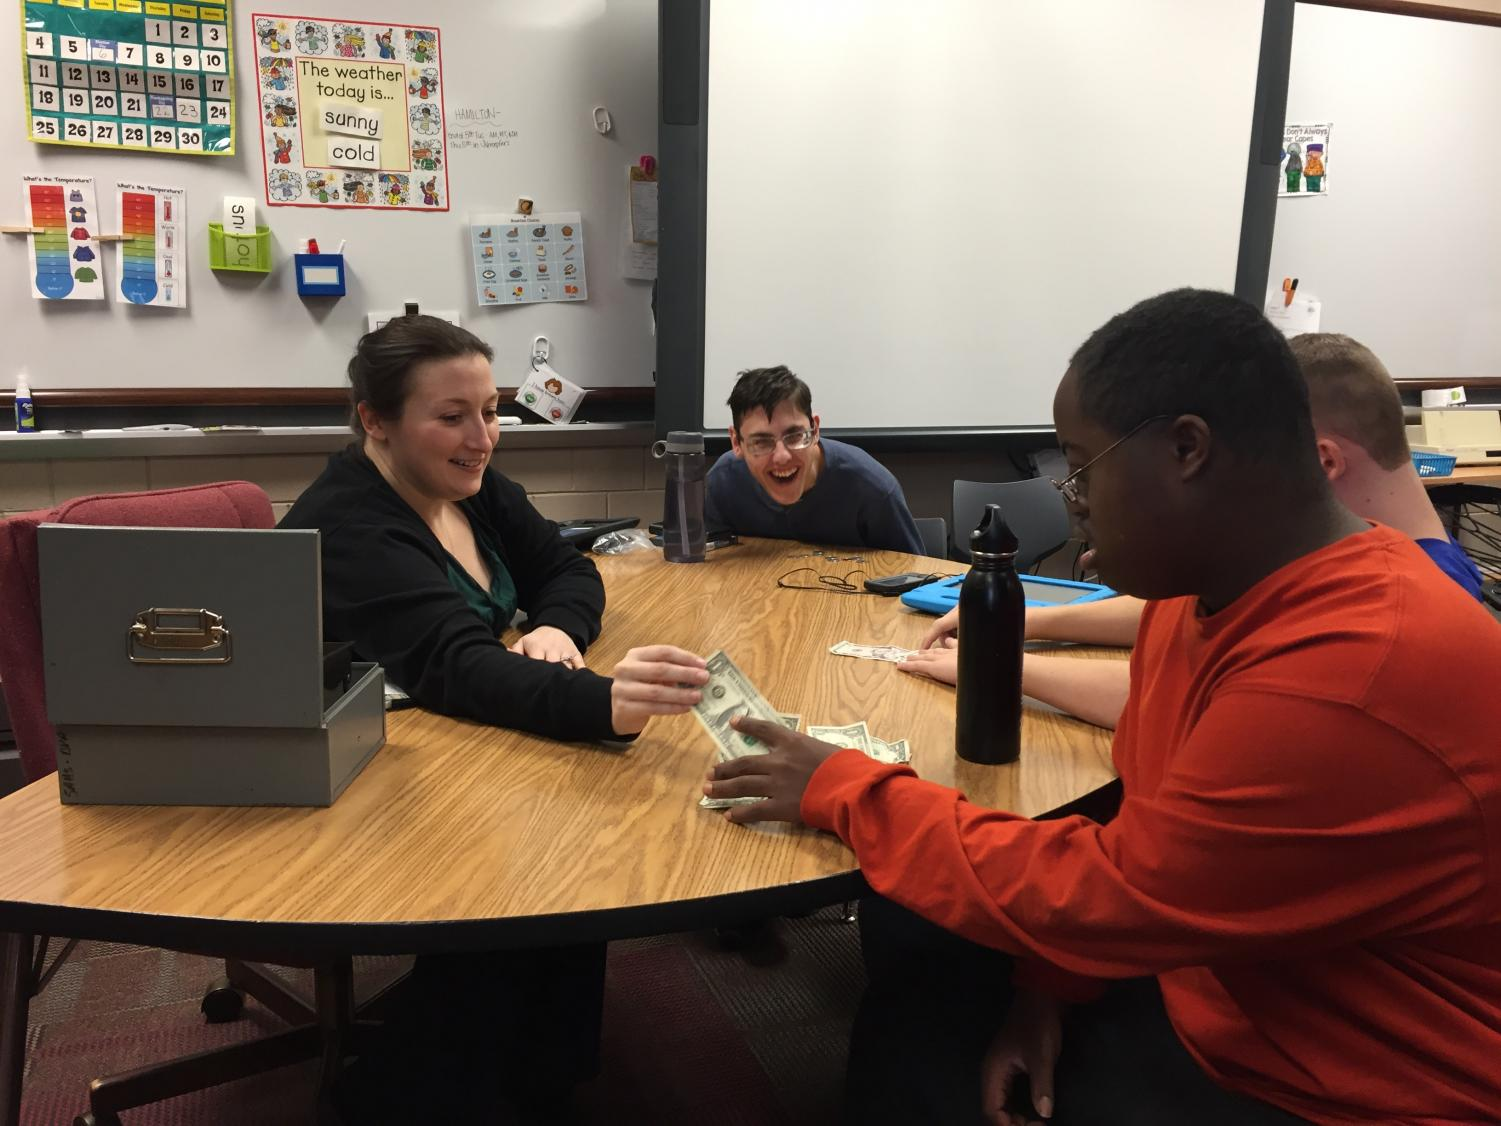 Special education teacher Nicole Schroepfer works with her students to help them learn to count money and prepare them for the world outside of the classroom.